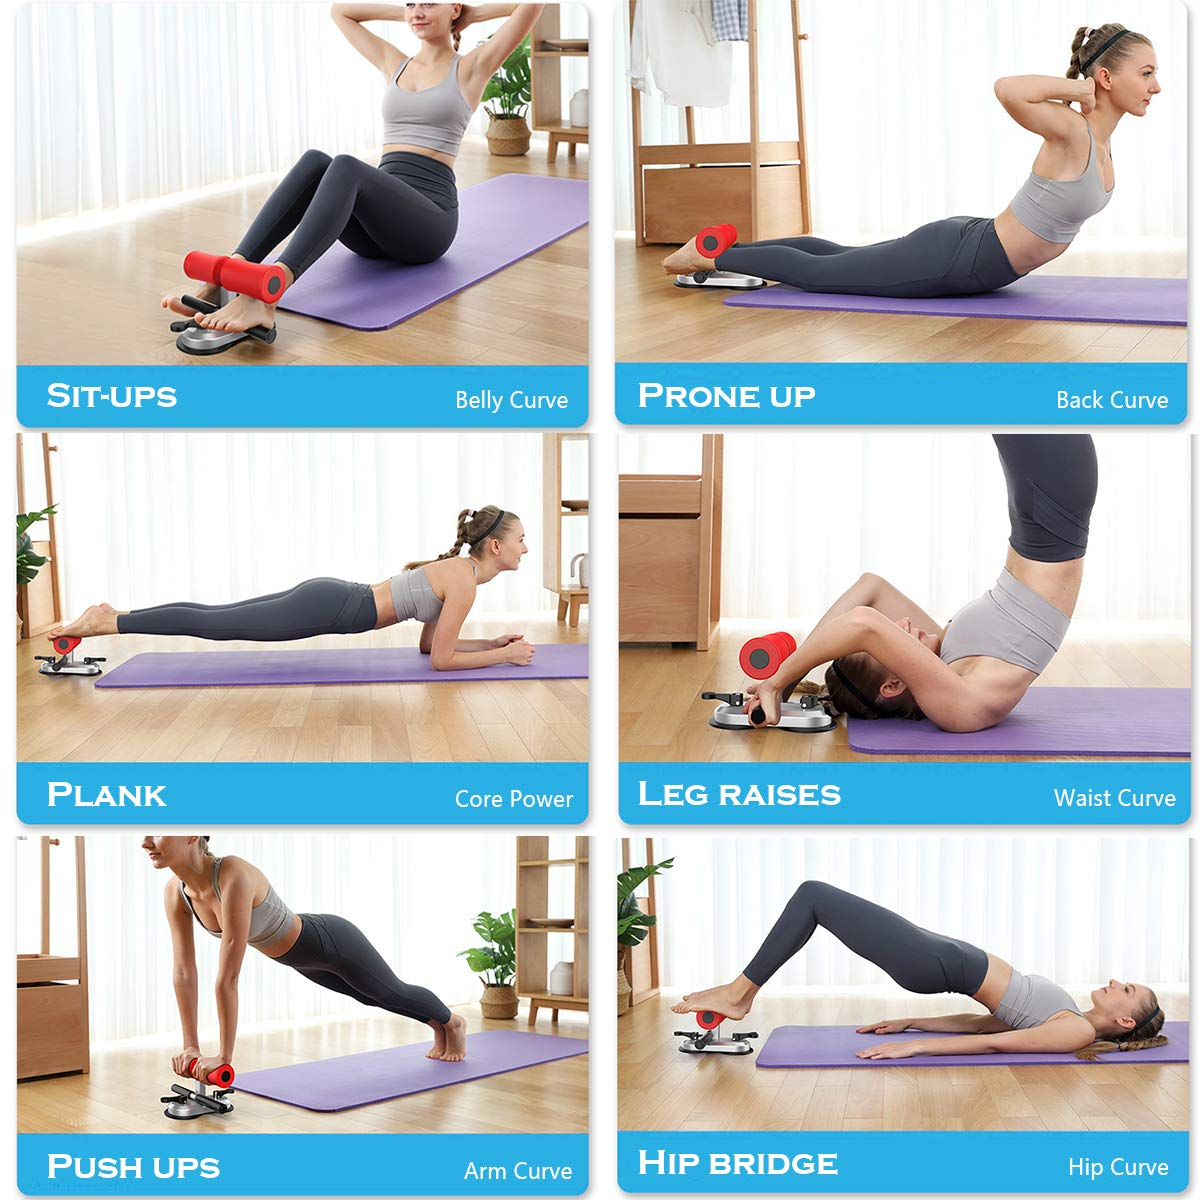 Multifunction Sit Up Bar,Portable Sit Up Assistant Equipment,Upgraded 2 Suction Cups and 4 Adjustable Positions,Household Fitness Exercise Device for Muscle Training Body Building Home Work Travel